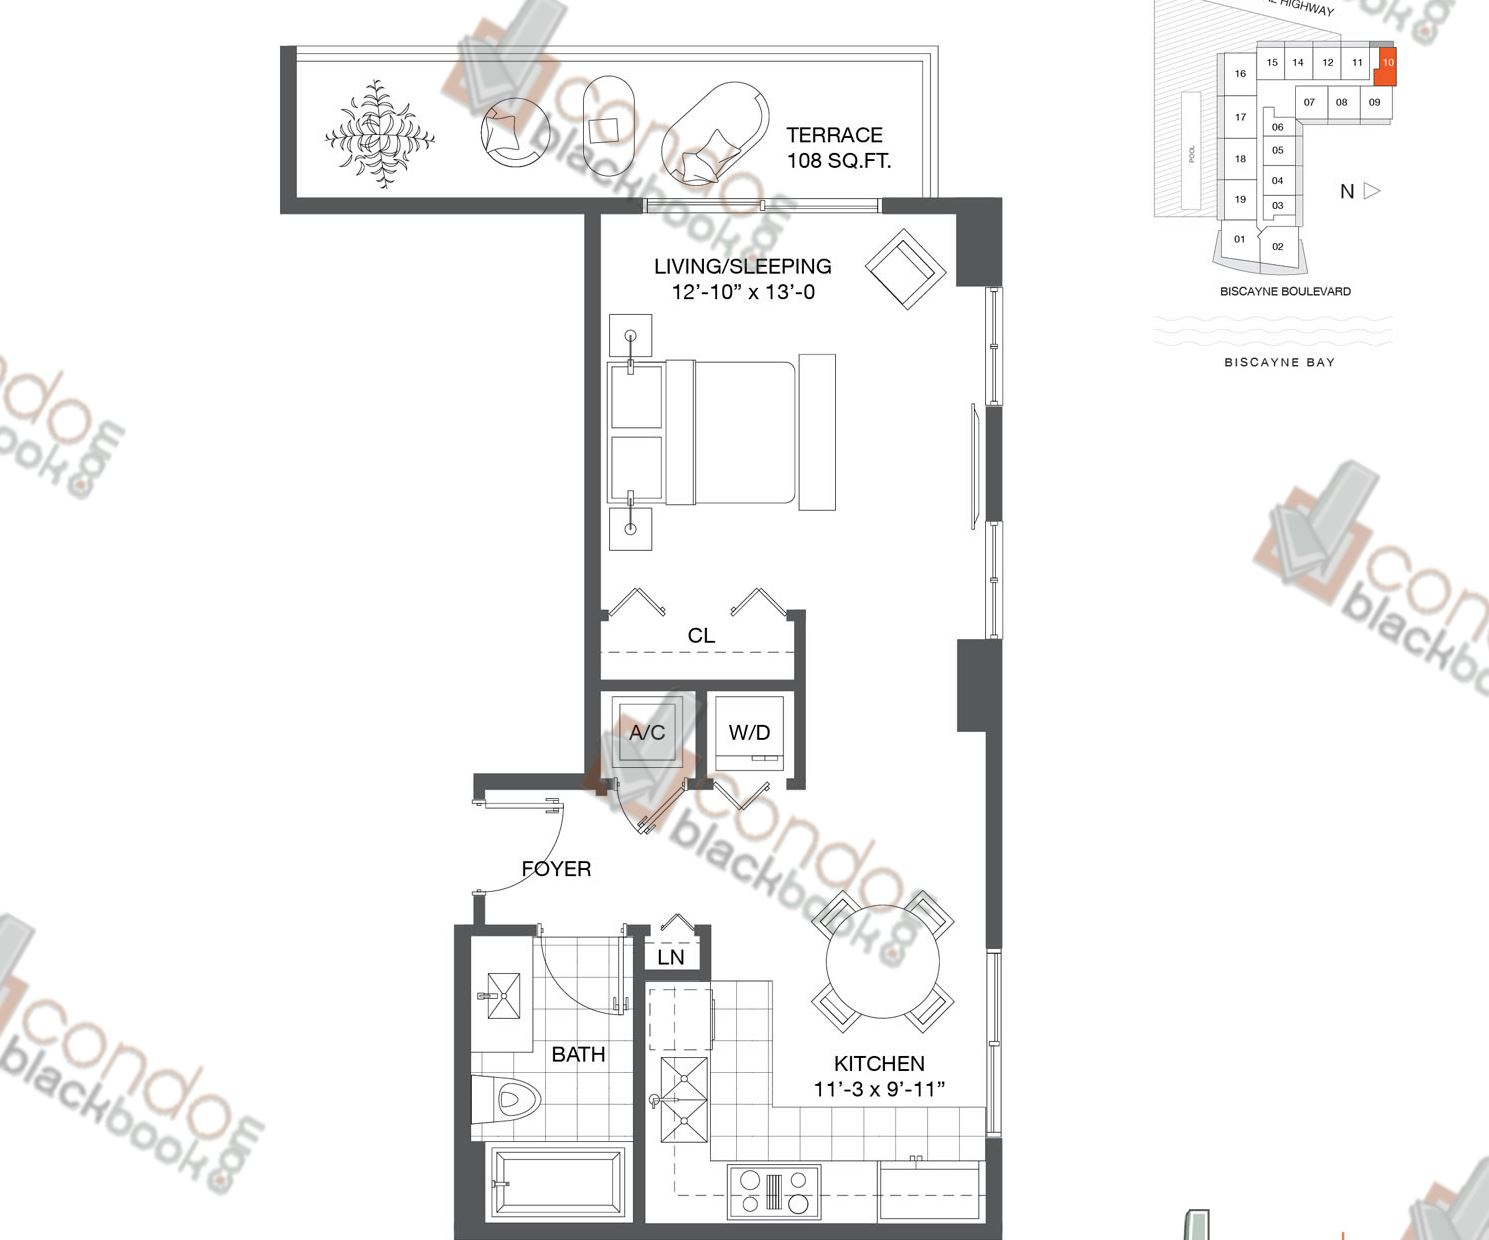 Floor plan for Baltus House Design District / Buena Vista Miami, model Residence 10, line 10, 0/1 bedrooms, 530 sq ft